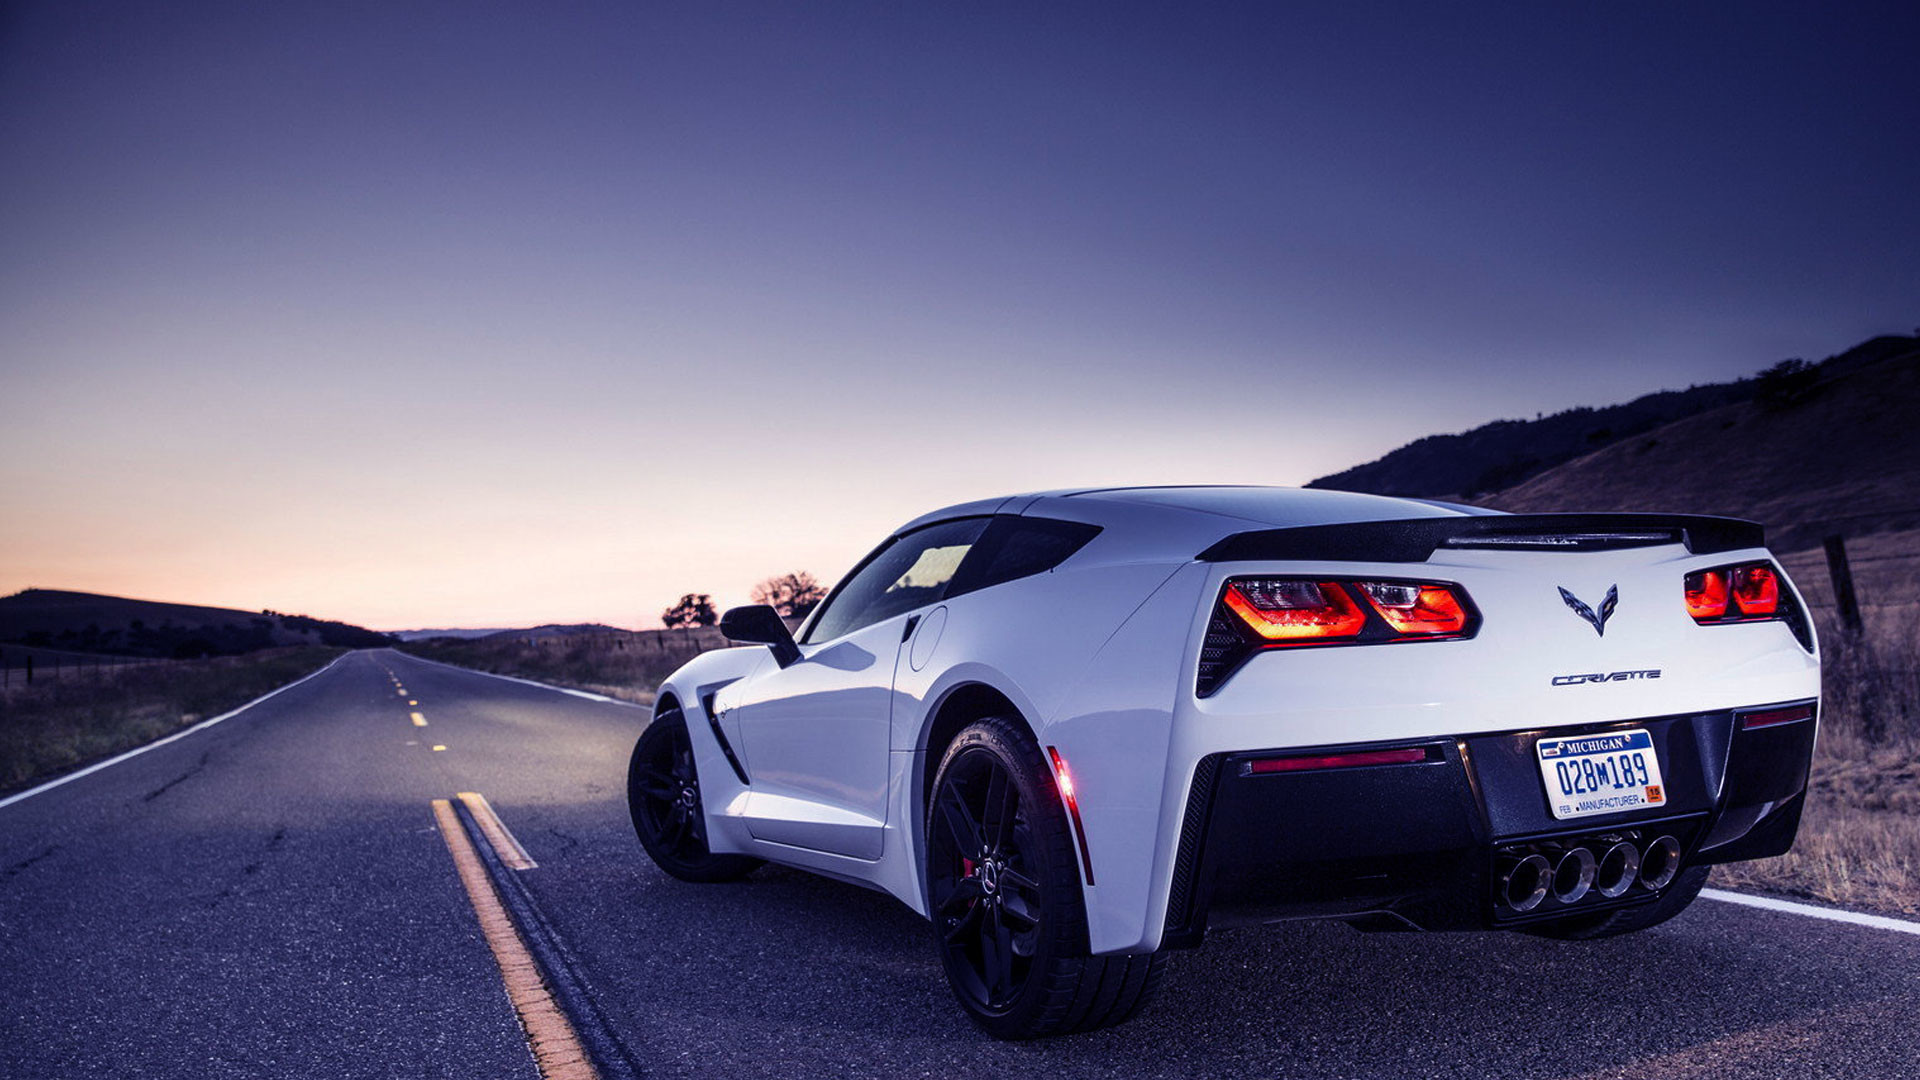 1920x1080 Chevrolet Corvette Grand Sport Wallpaper HD Car Wallpapers 1600A 1200 49